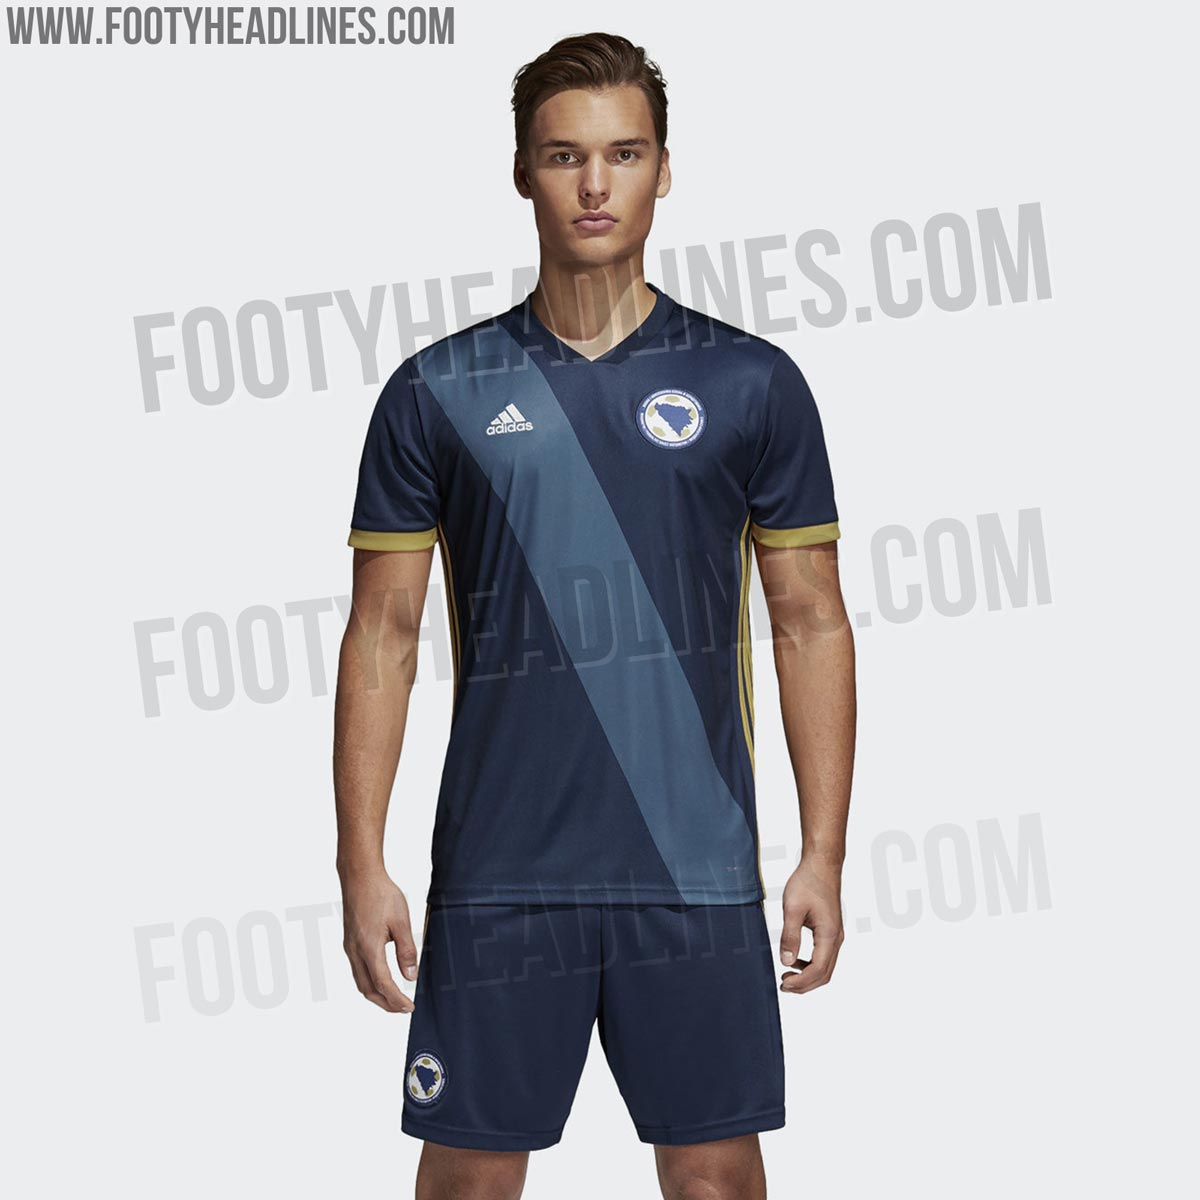 bosnia-herzegovina-2018-home-kit-5.jpg